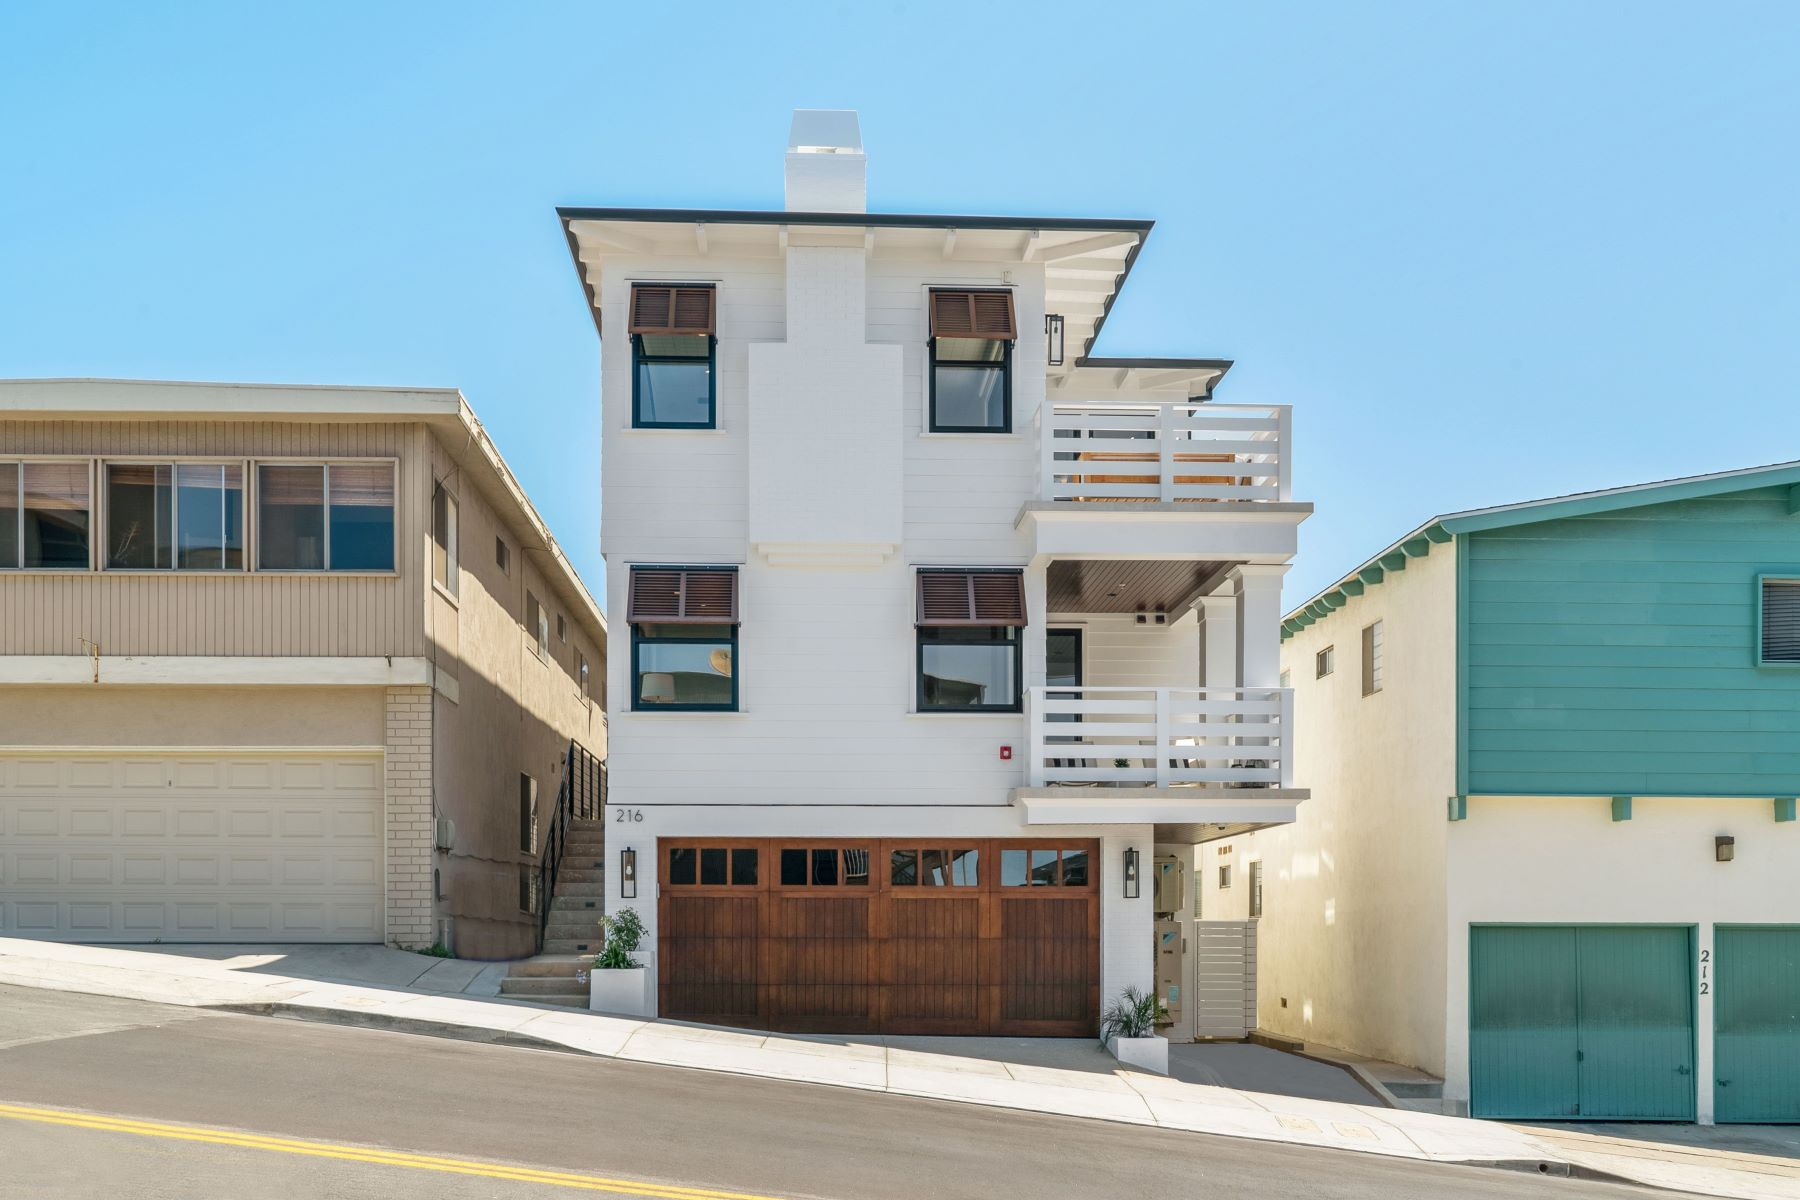 townhouses por un Venta en 216 Marine Avenue, Manhattan Beach, CA 90266 216 Marine Avenue Manhattan Beach, California 90266 Estados Unidos